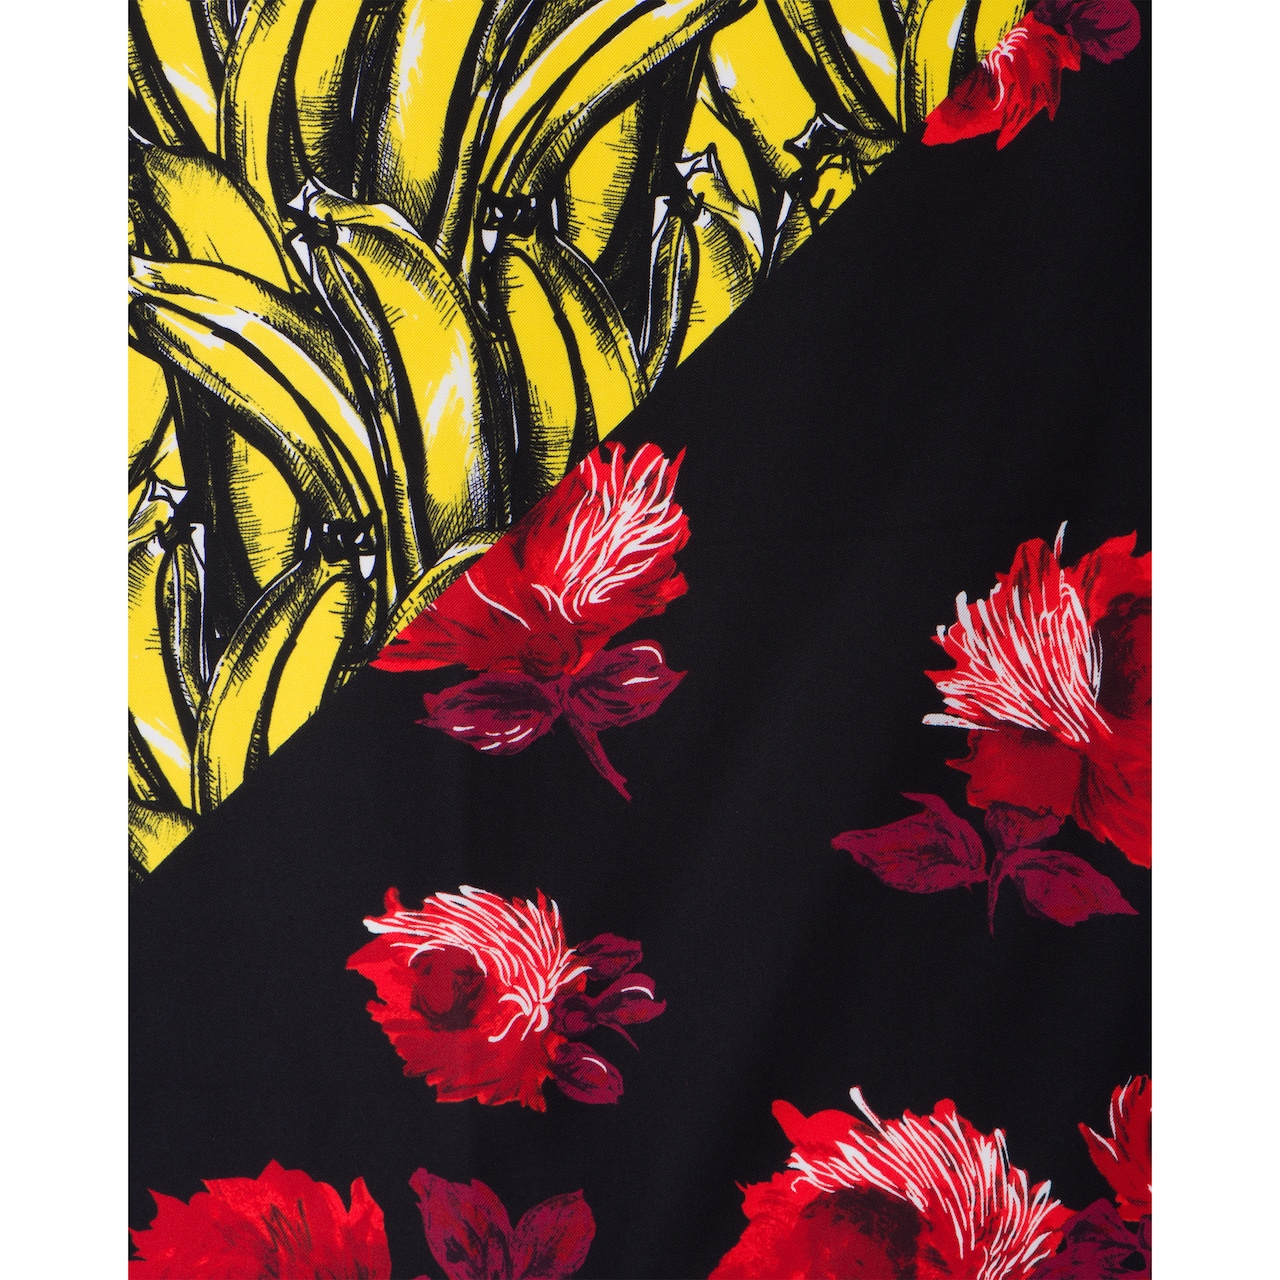 Double Match Bananas printed 55 silk scarf